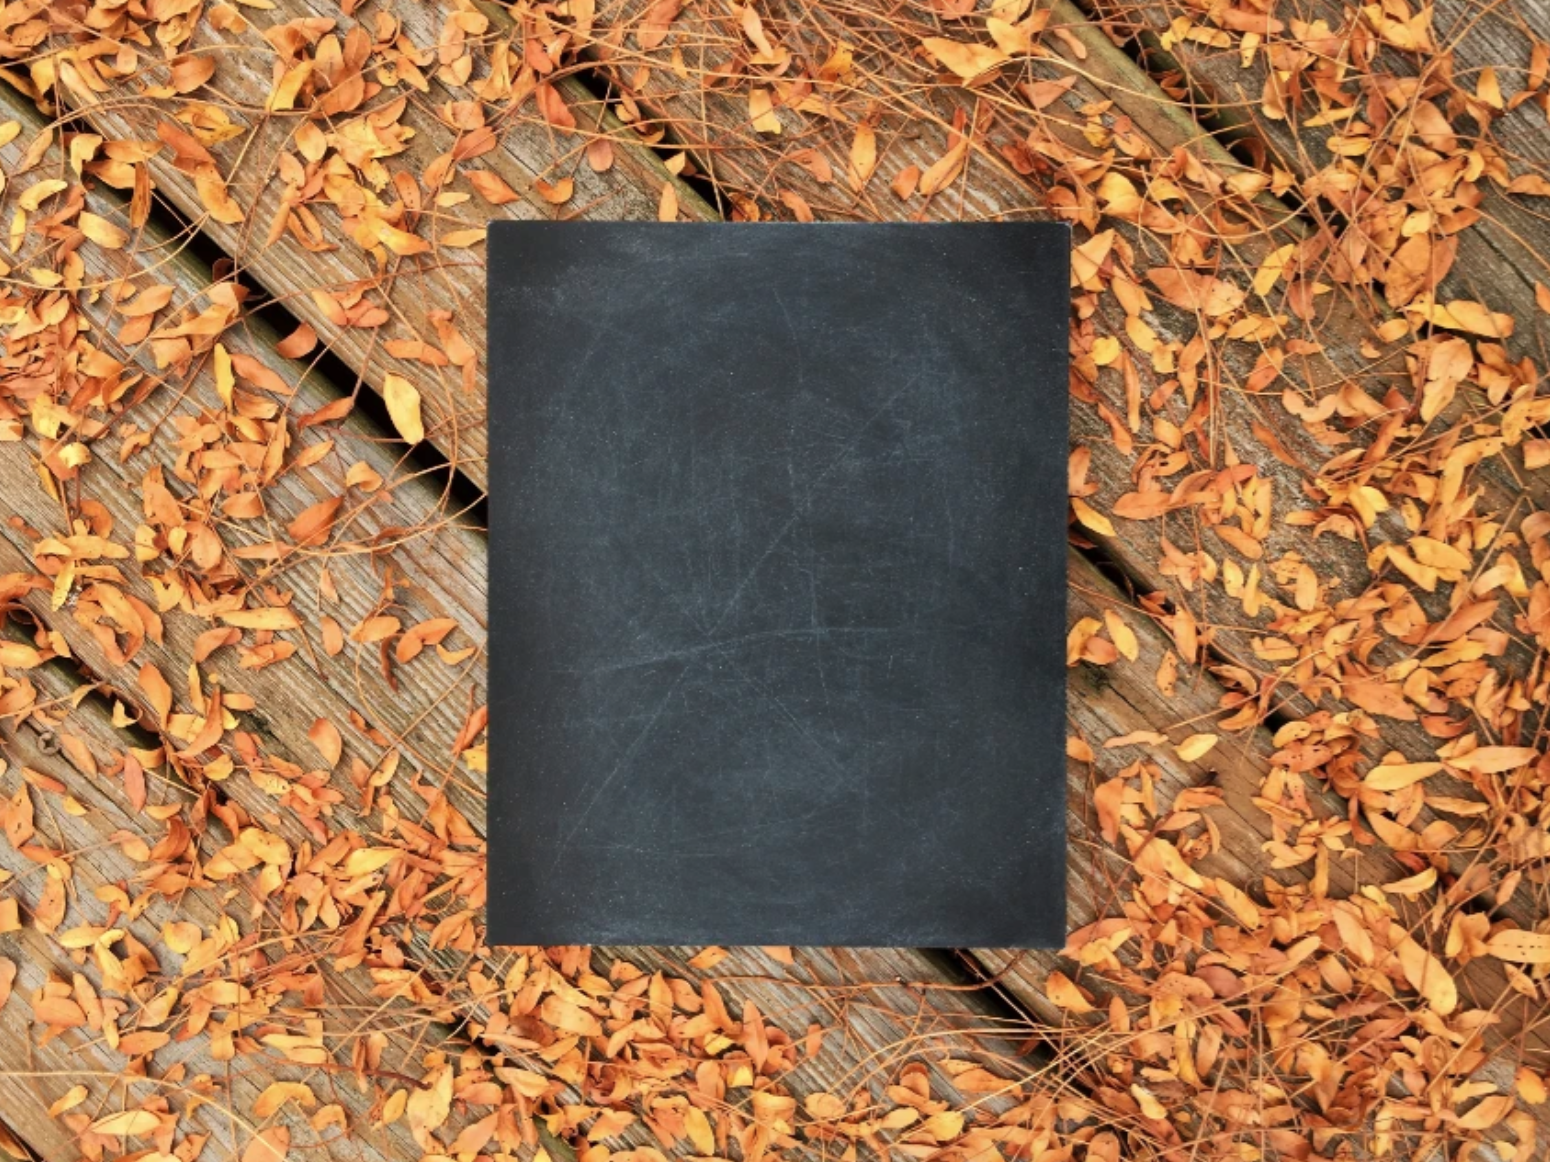 Black chalkboard with leaves